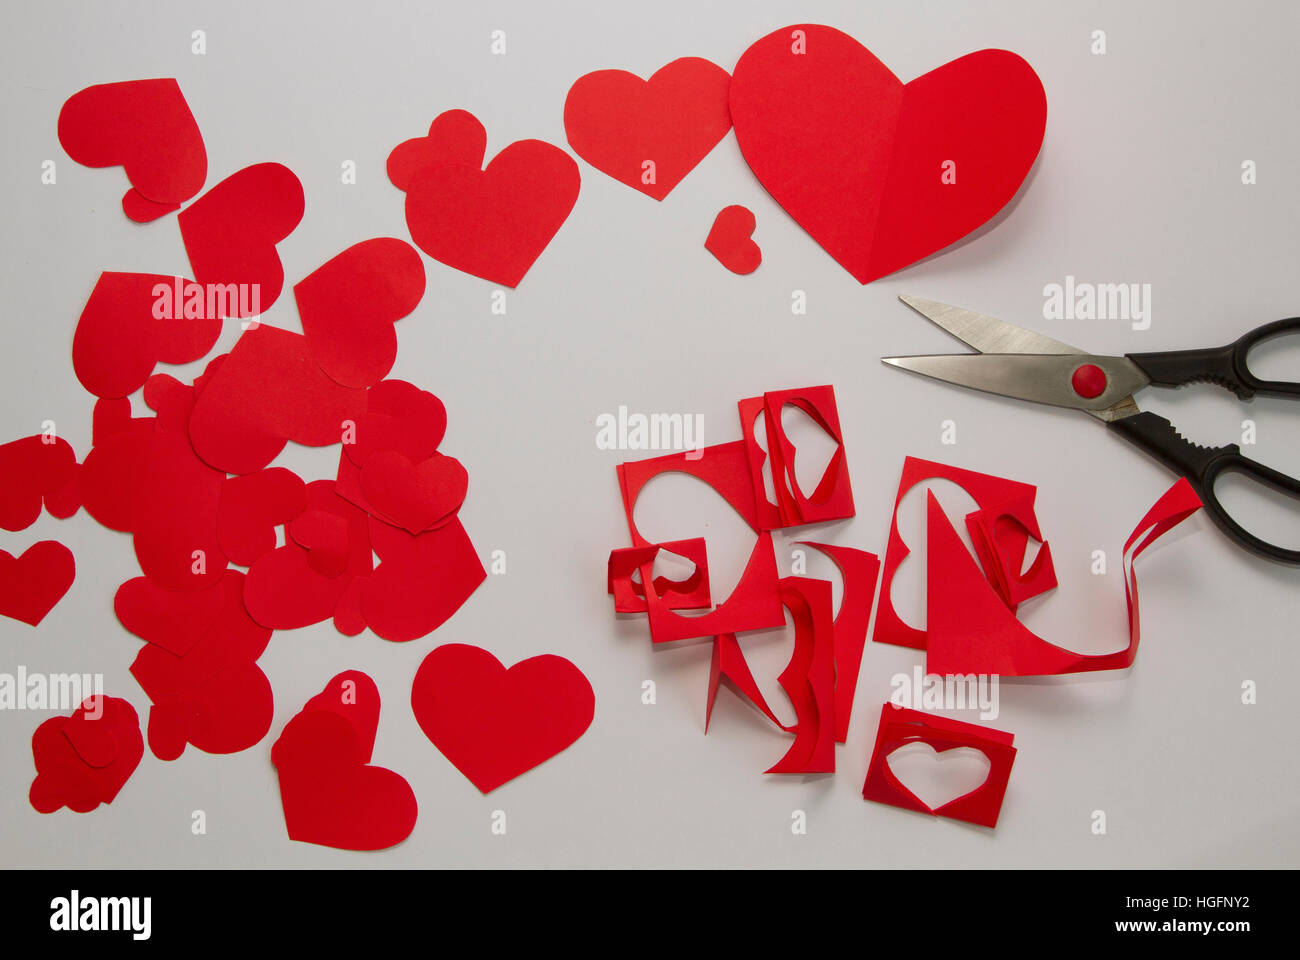 Preparation Of Greeting Cards For Valentines Day From Red Paper